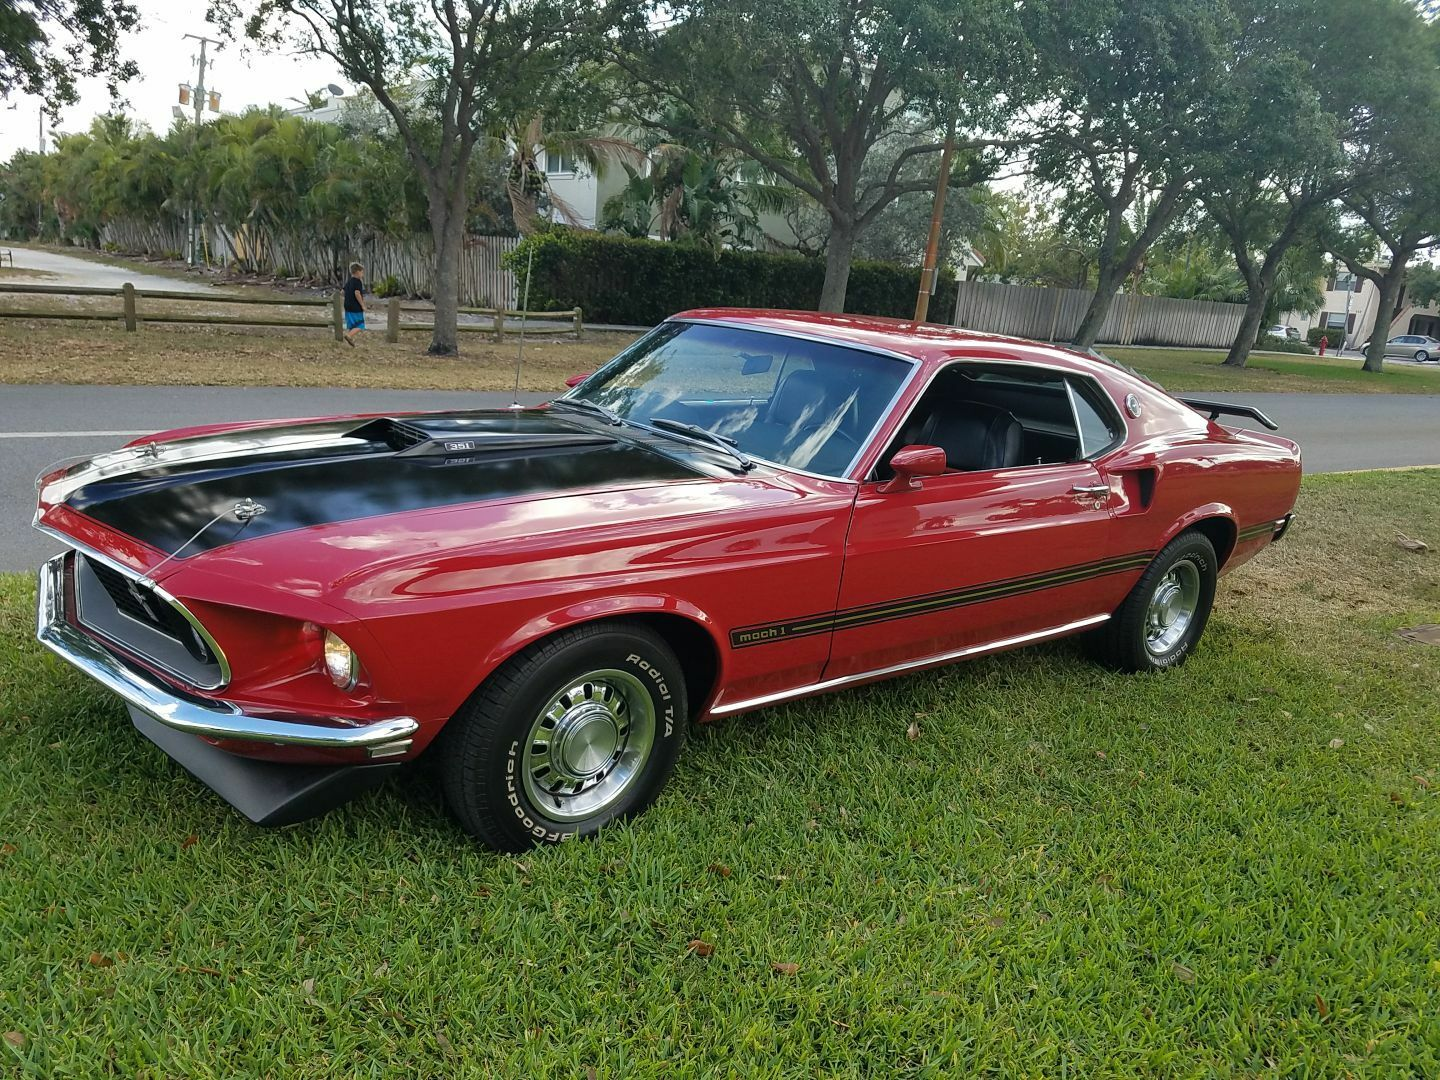 1969 FORD MUSTANG MACH 1 351 CU. IN. V-8 4 SPEED MANUAL  NO RESERVE VERY CLEAN!!